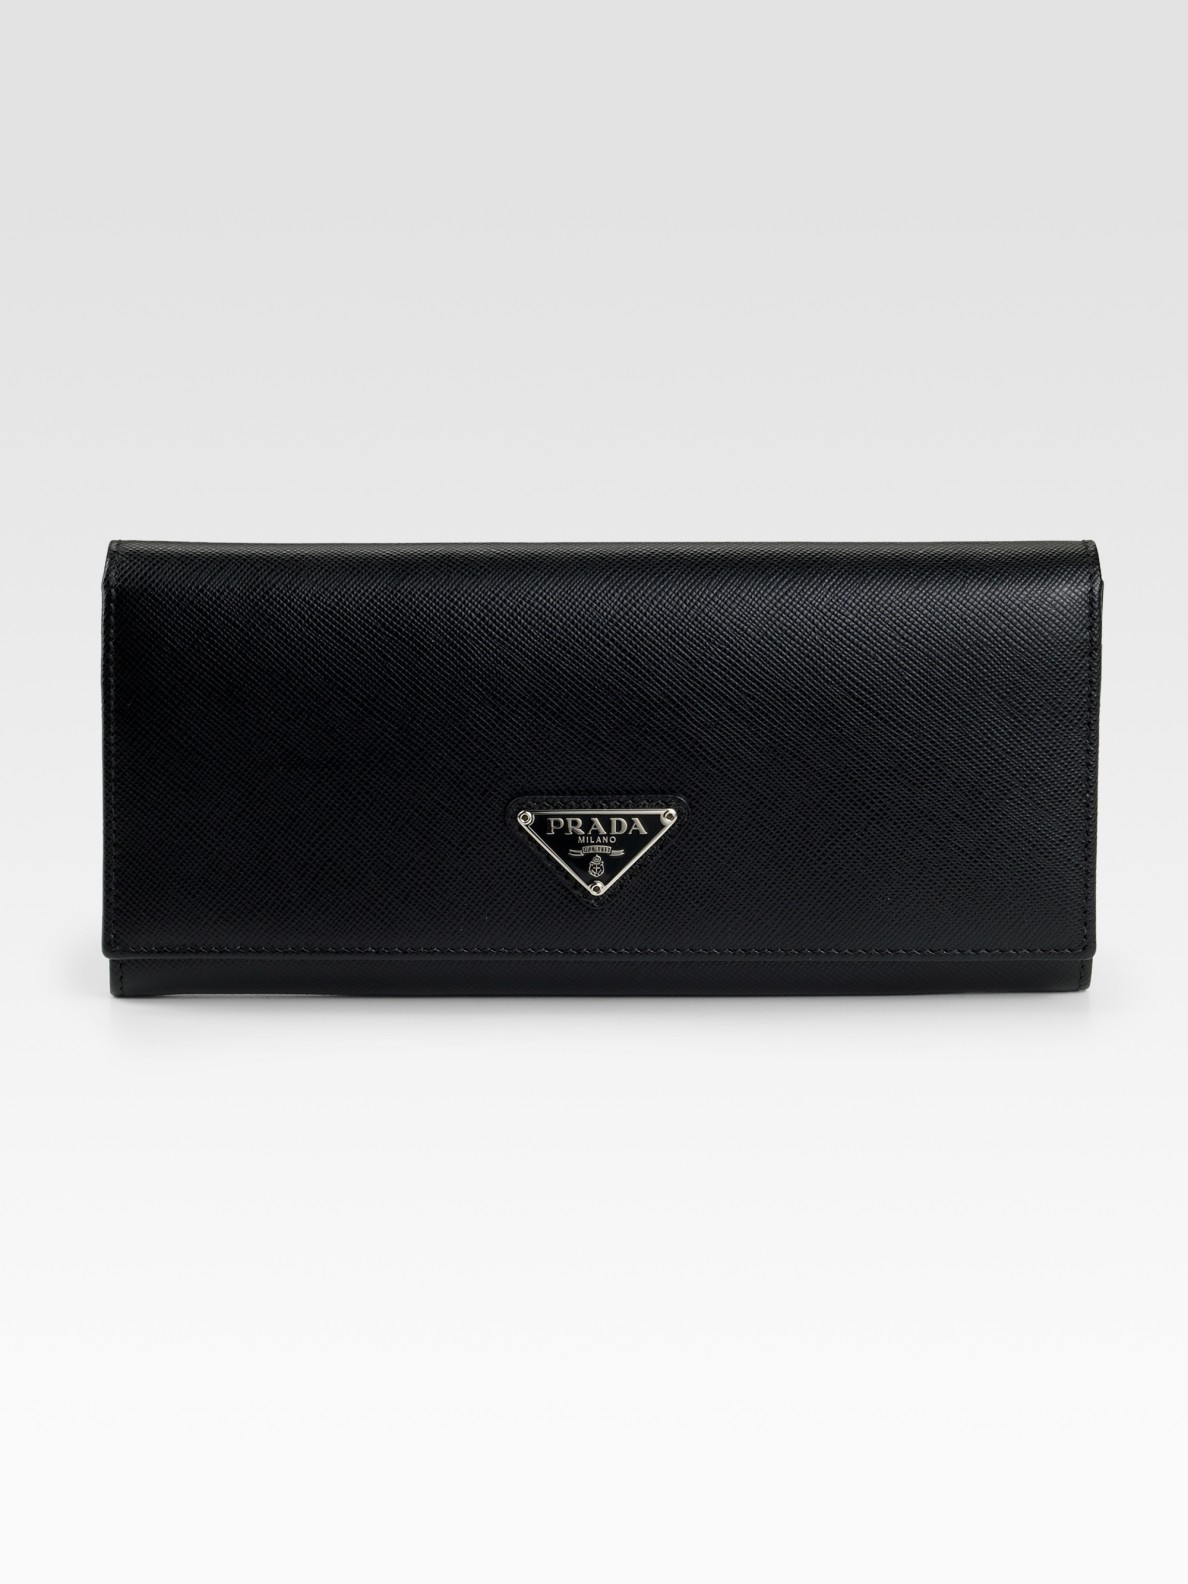 c6f400530529c9 Prada Saffiano Flap Wallet Black | Stanford Center for Opportunity ...